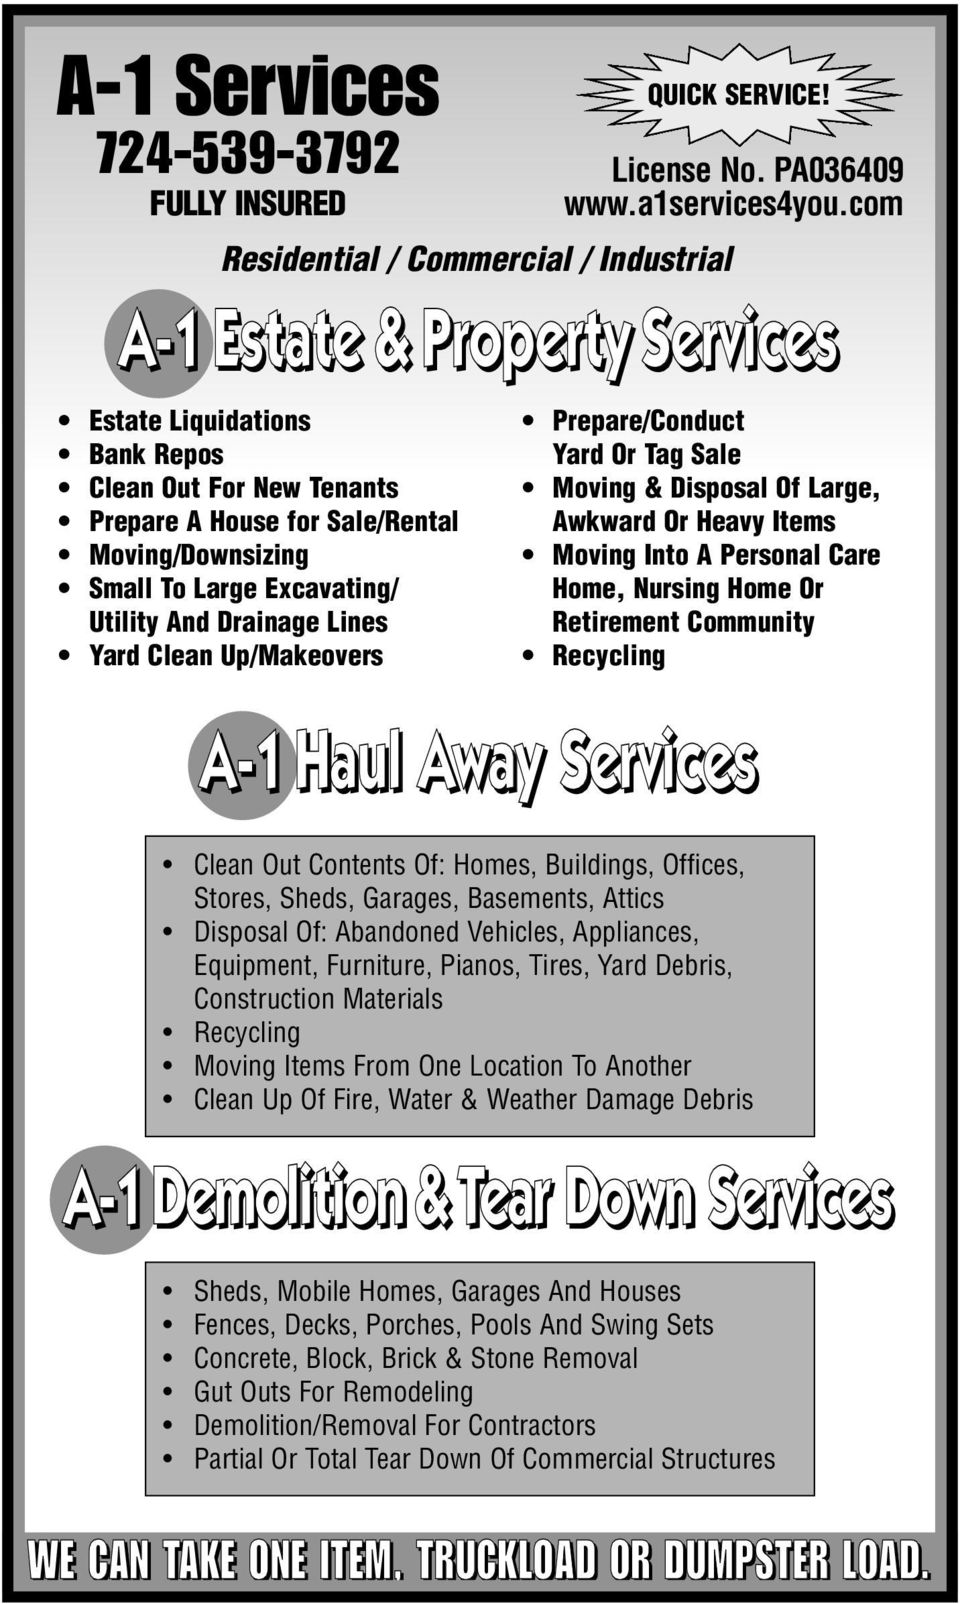 com Residential / Commercial / Industrial Prepare/Conduct Yard Or Tag Sale Moving & Disposal Of Large, Awkward Or Heavy Items Moving Into A Personal Care Home, Nursing Home Or Retirement Community